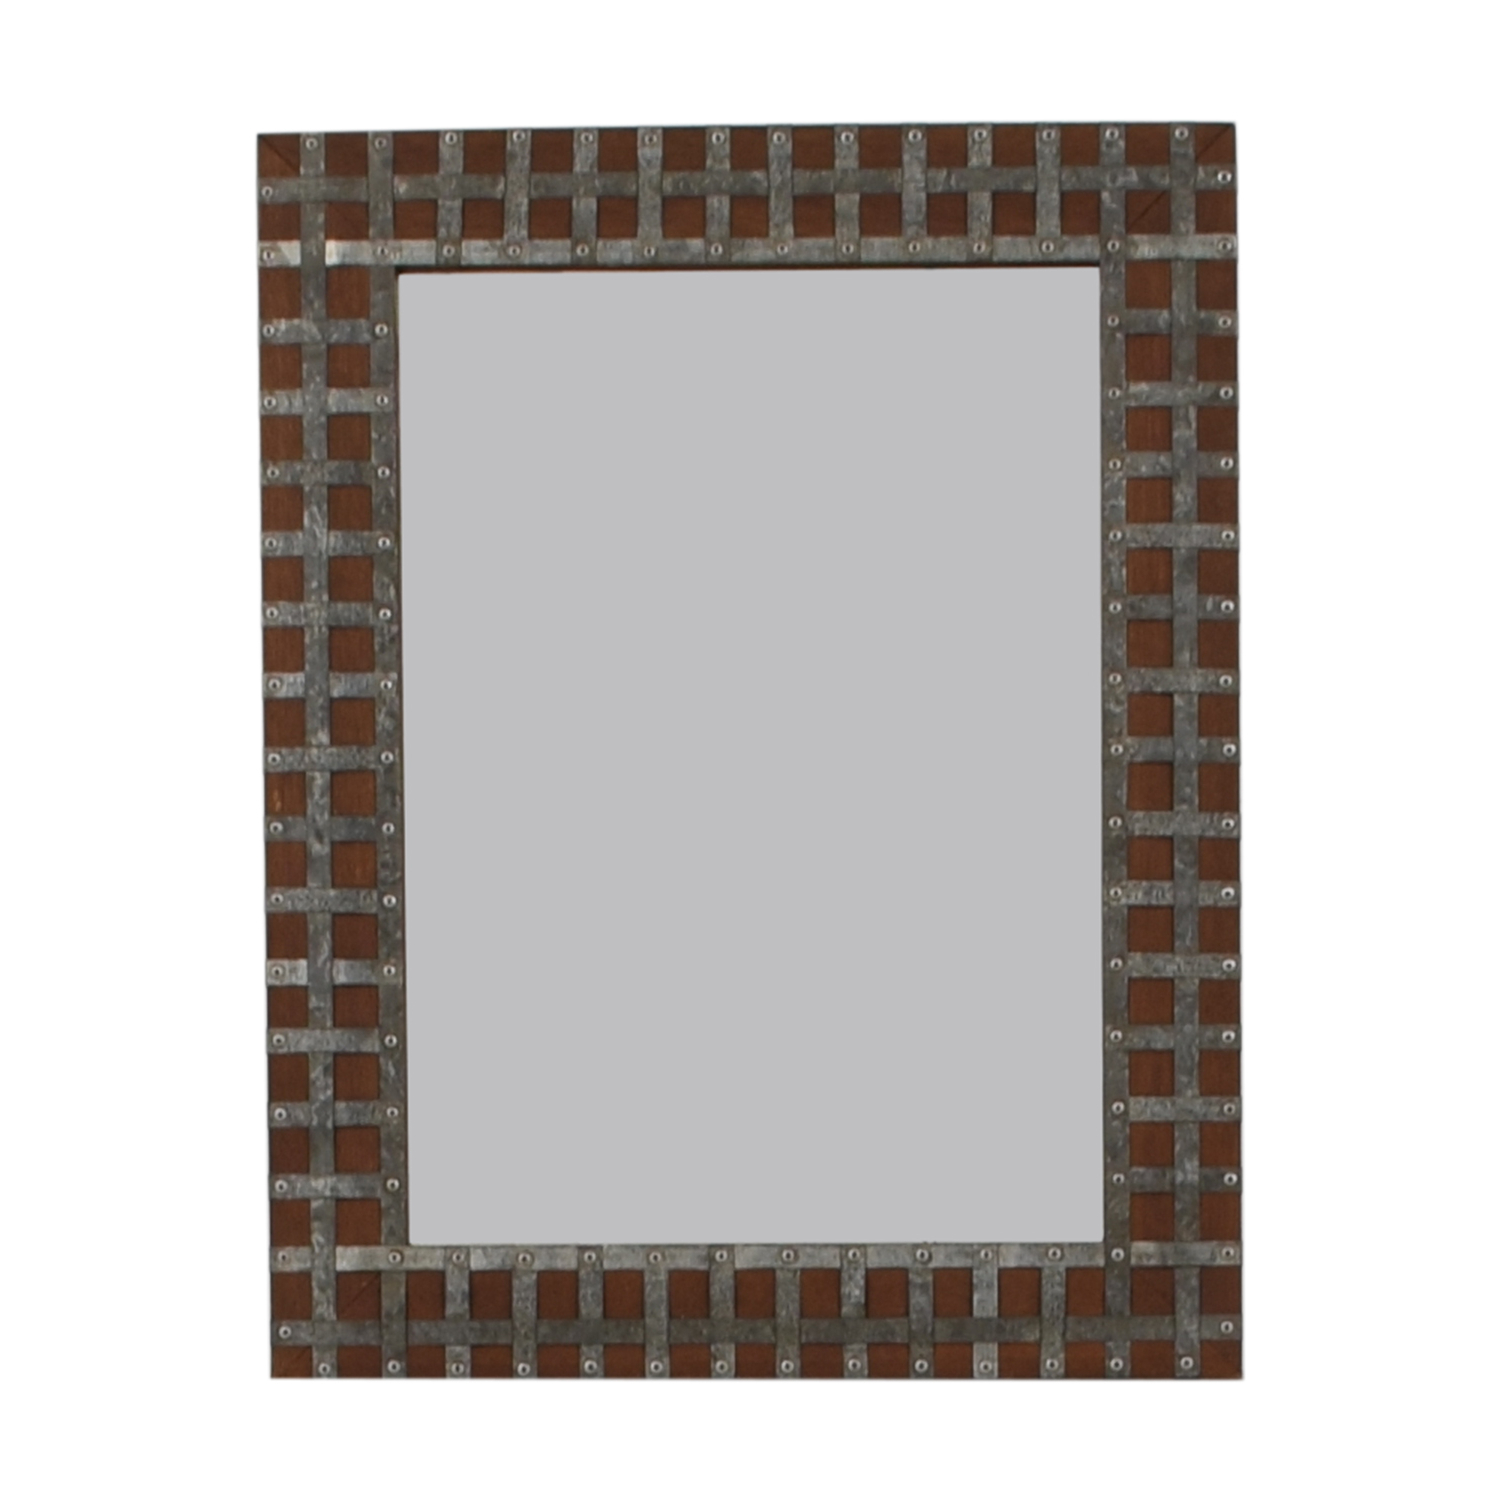 [%90% Off – Pier 1 Pier One Industrial Wood And Metal Framed Wall Mirror / Decor Throughout Current Pier One Wall Mirrors|Pier One Wall Mirrors With 2020 90% Off – Pier 1 Pier One Industrial Wood And Metal Framed Wall Mirror / Decor|Well Known Pier One Wall Mirrors Pertaining To 90% Off – Pier 1 Pier One Industrial Wood And Metal Framed Wall Mirror / Decor|Most Up To Date 90% Off – Pier 1 Pier One Industrial Wood And Metal Framed Wall Mirror / Decor In Pier One Wall Mirrors%] (View 10 of 20)